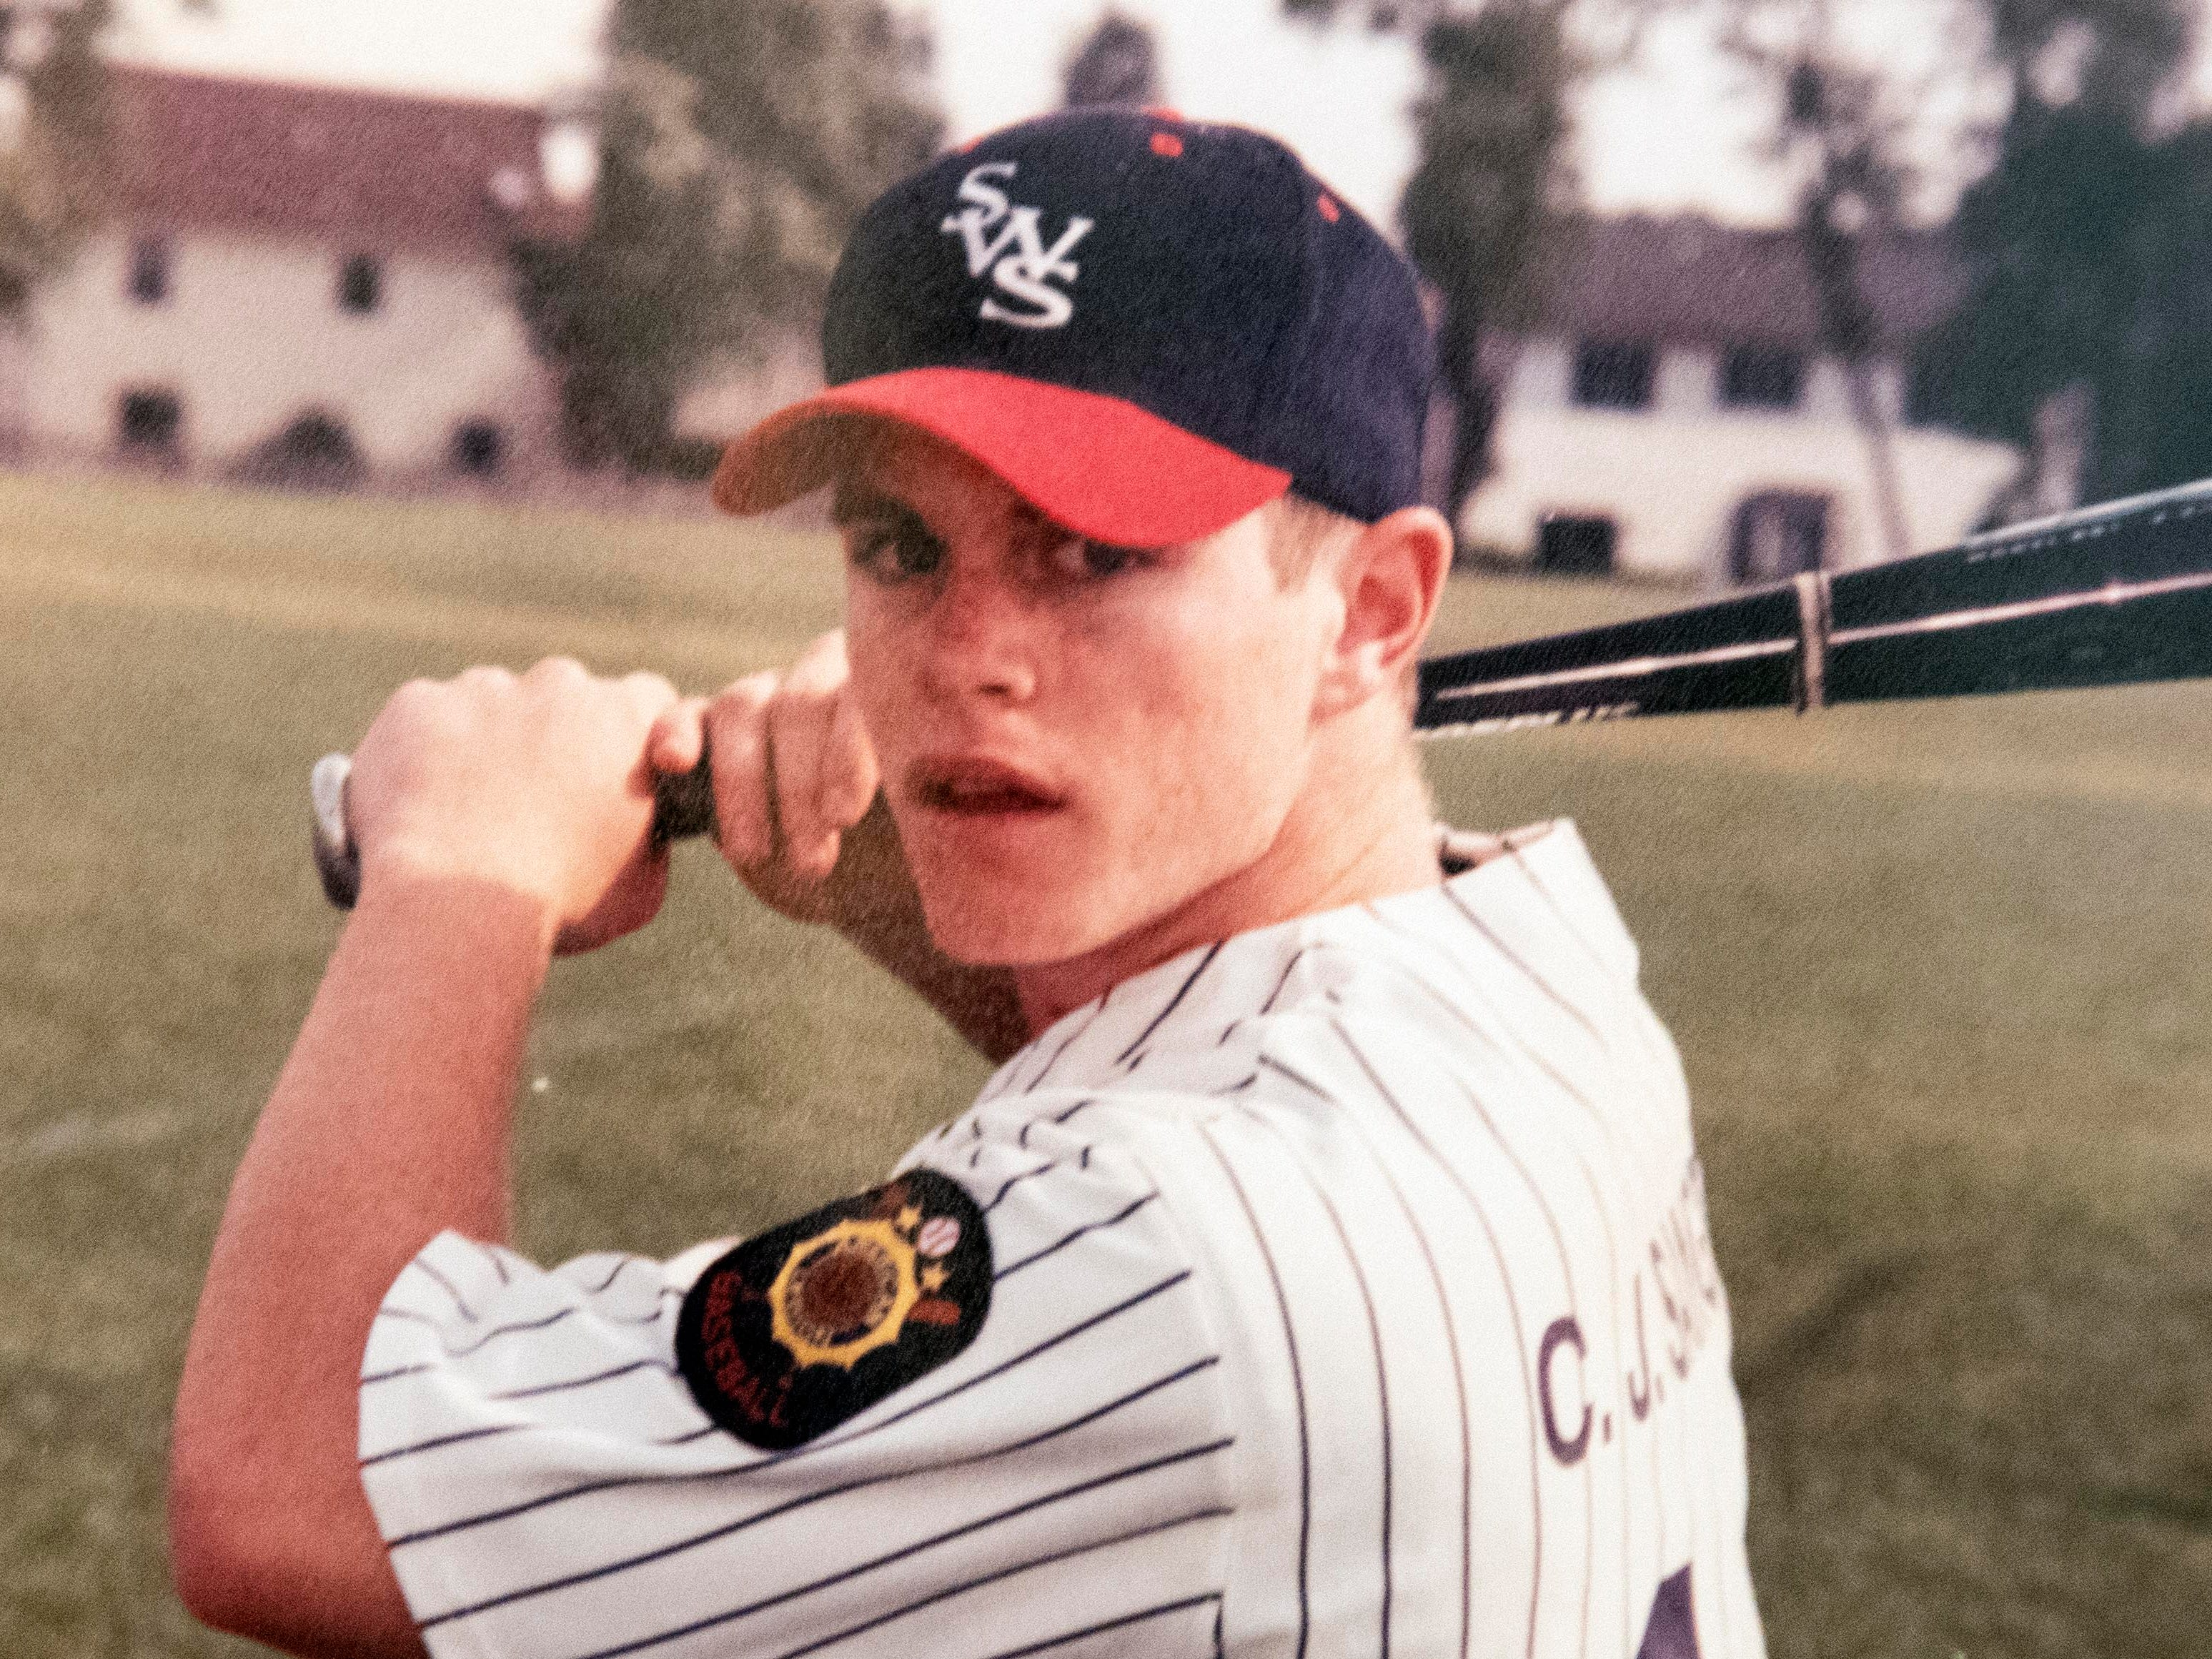 Kyle Pitts played baseball through his youth, where he learned how to be a good team player, according to his father, John Pitts. Kyle went on to be a York City Police Officer, who still has a team-oriented mindset.